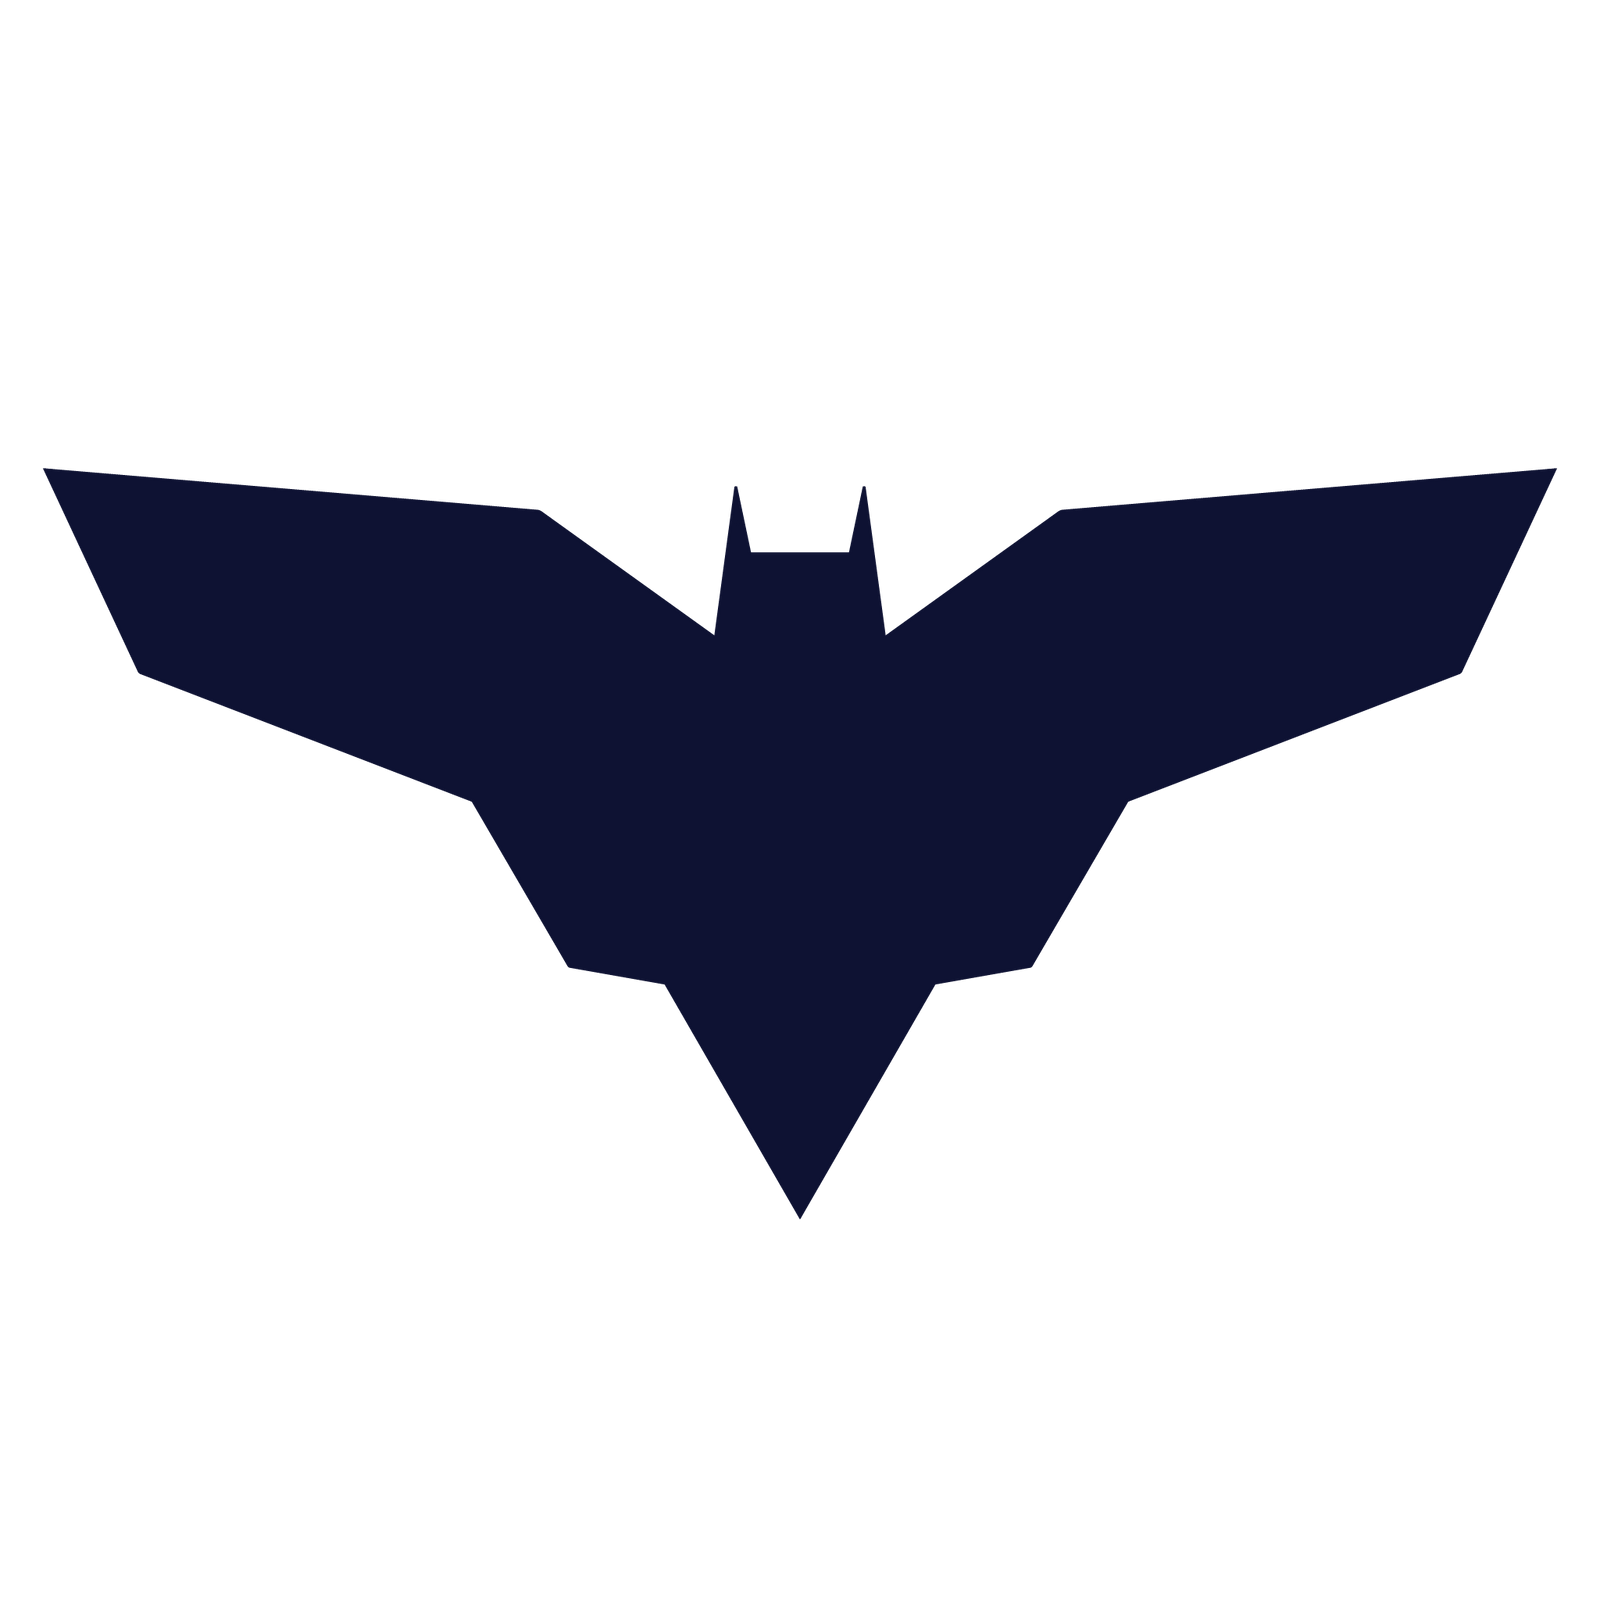 Injustice 2 batman symbol navy blue by deathcantrell on Batman symbol